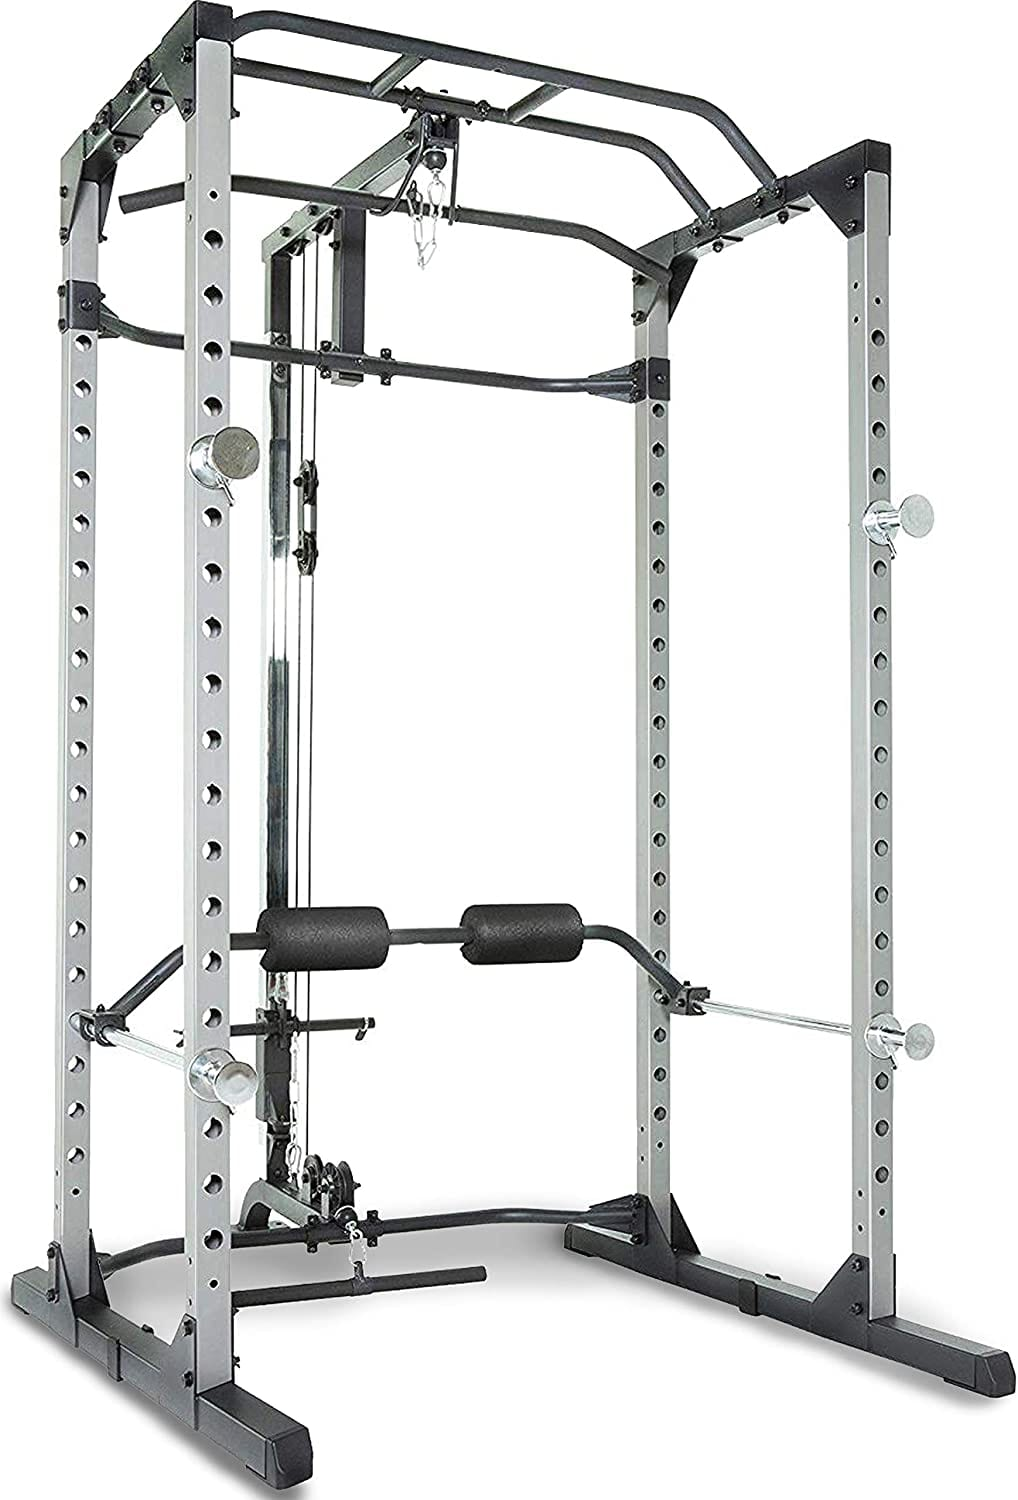 Fitness Reality 810 XLT Super Max Power Cage Review in 2021 1